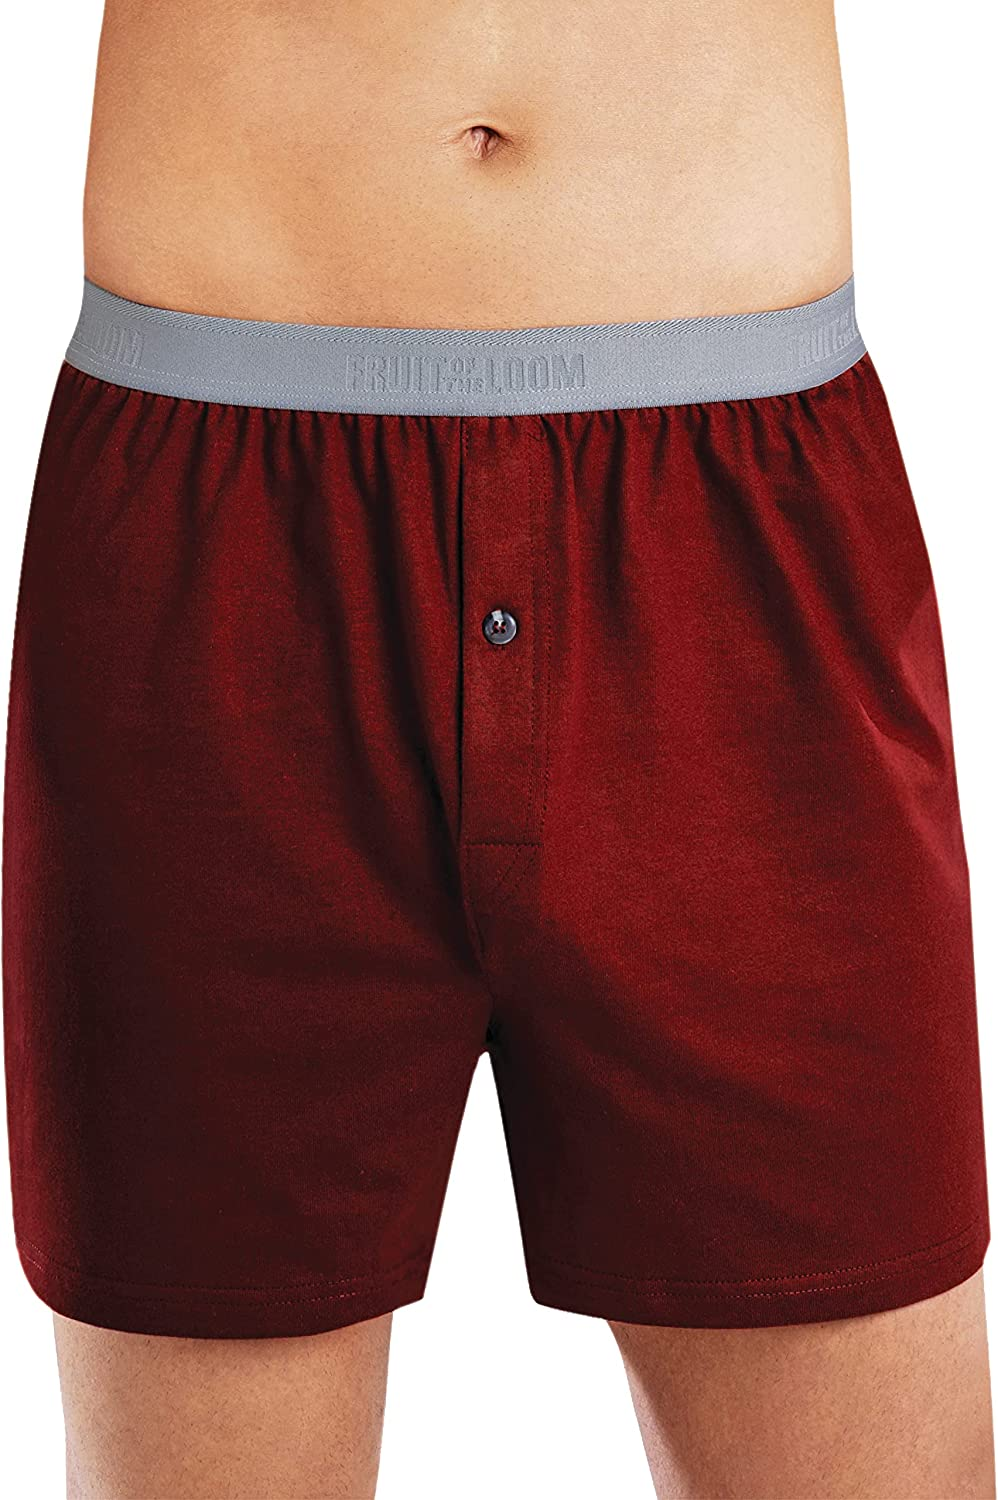 Fruit of the Loom Super sale Men's Premium Tag-Free Underwear Unde Cotton Same day shipping